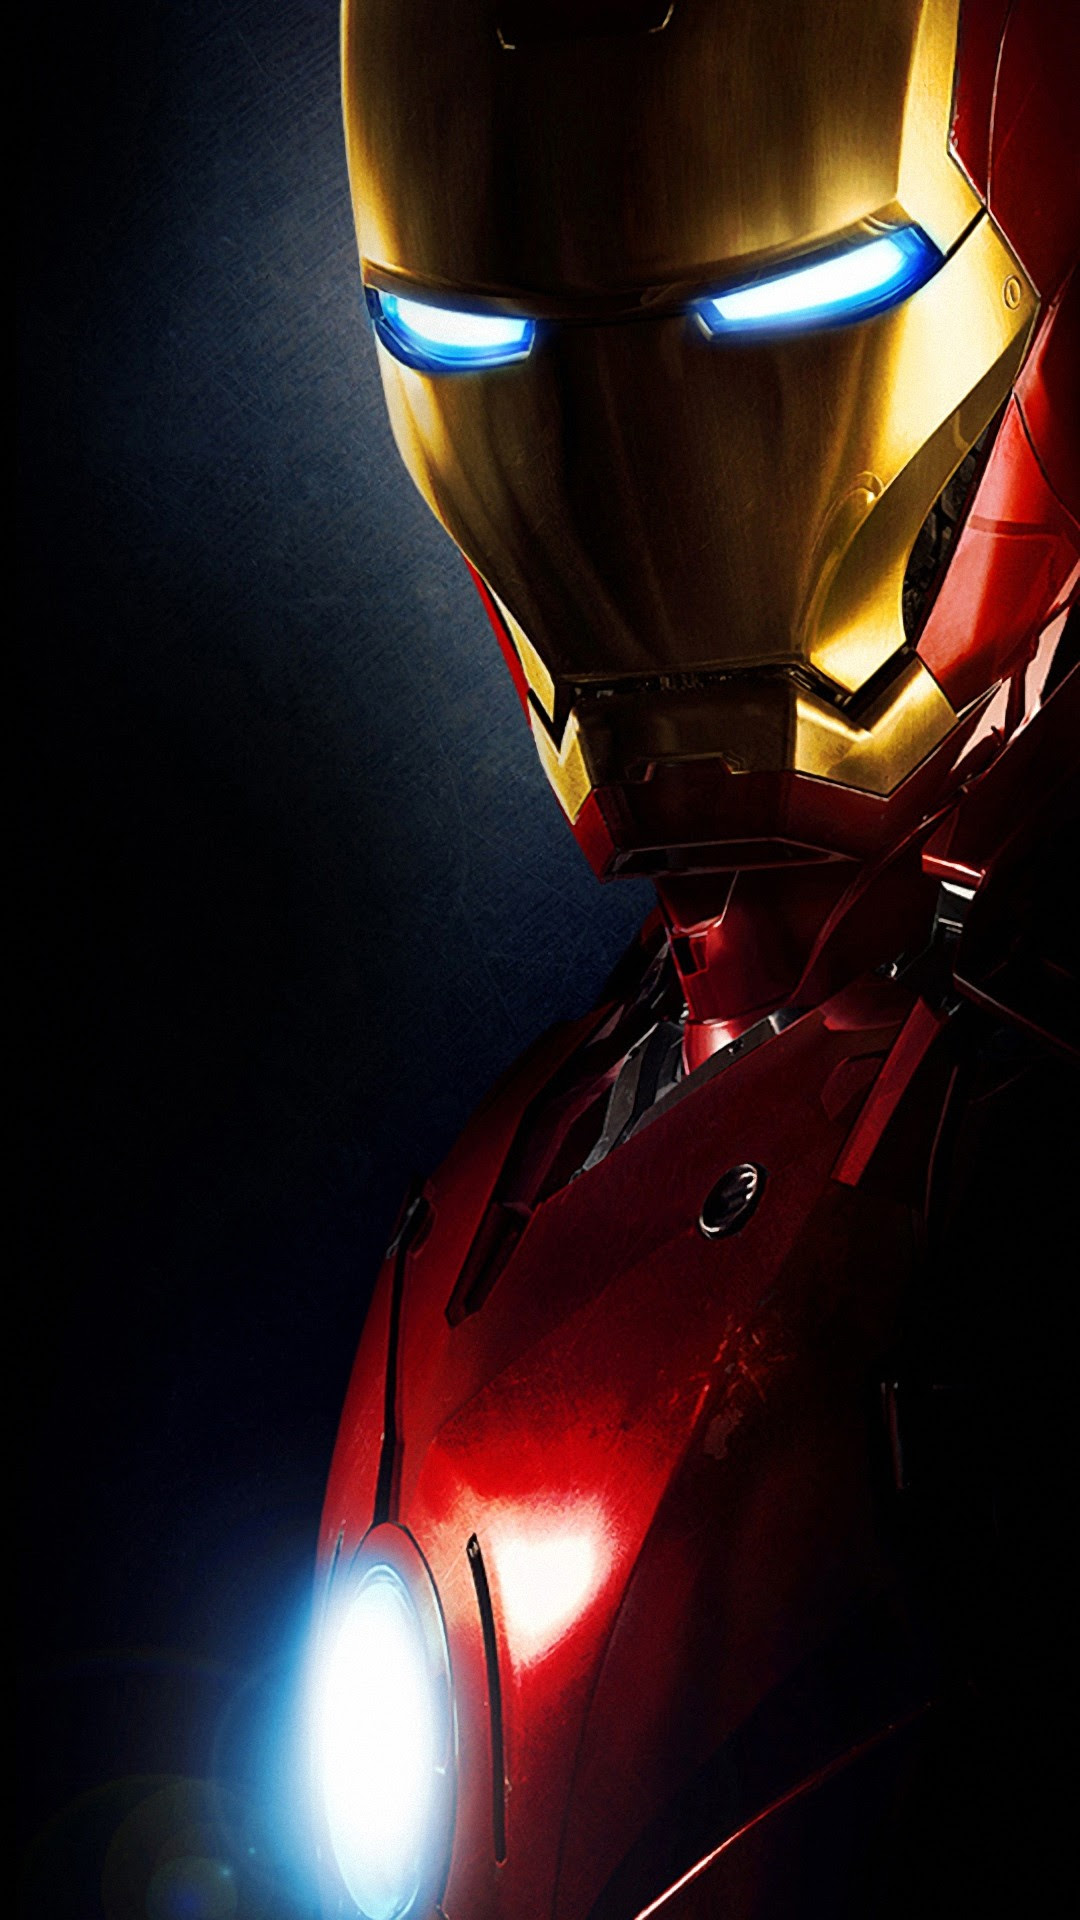 Iron Man Jarvis Wallpaper HD 72+ images